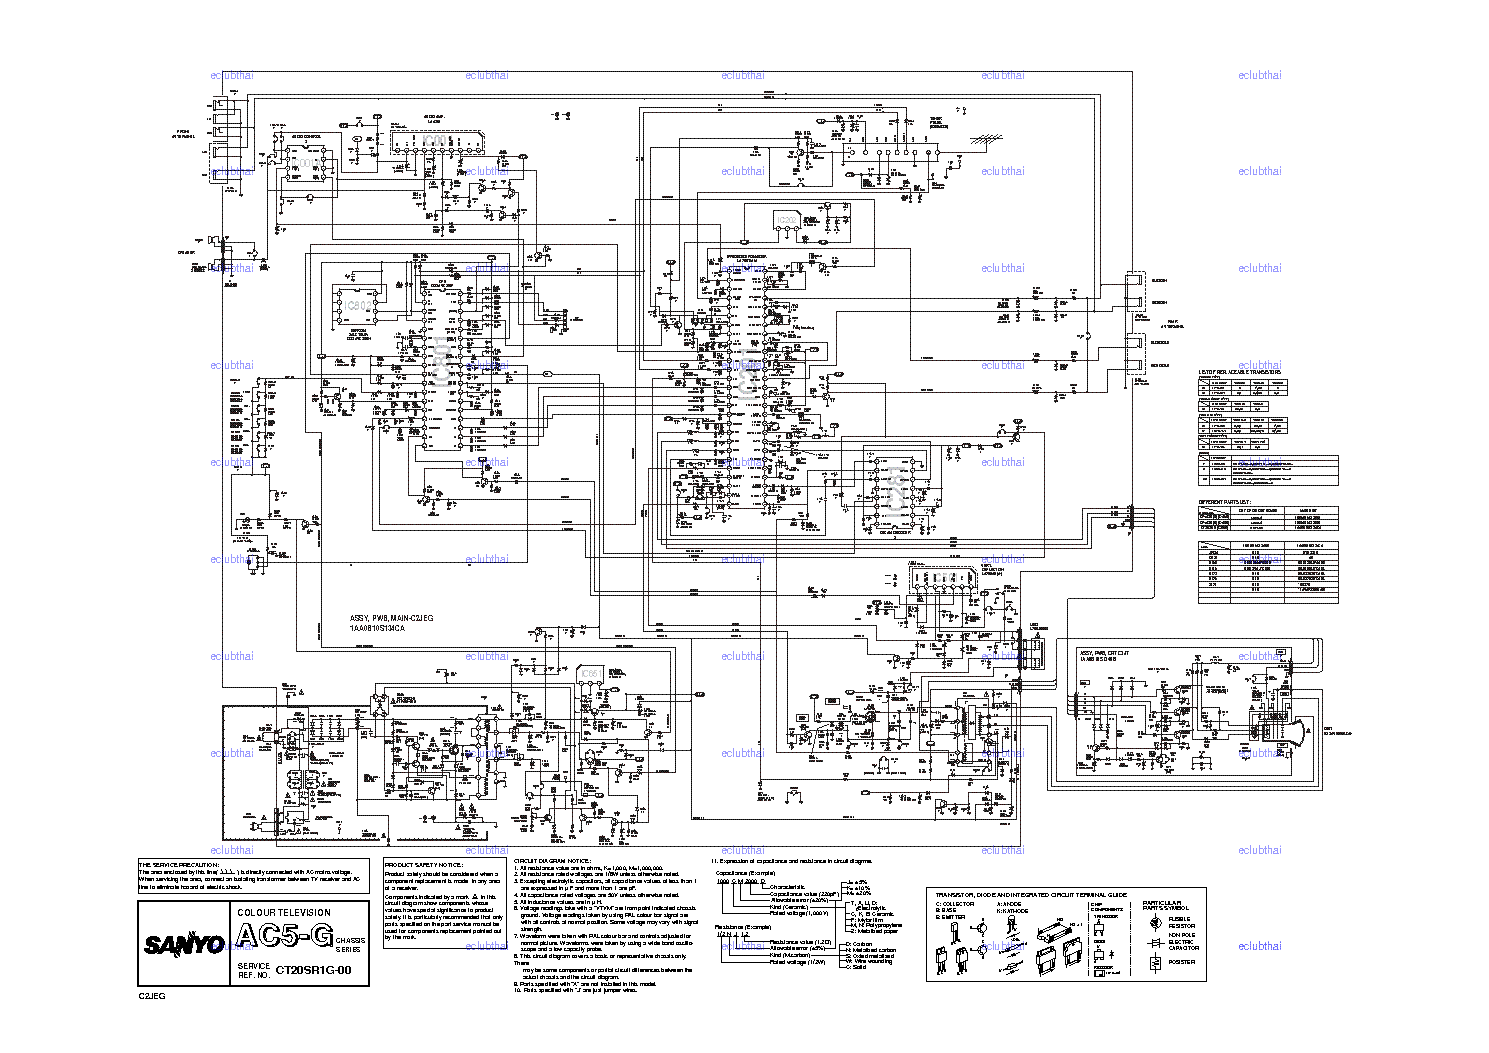 SANYO CE21A2-C Service Manual download, schematics, eeprom